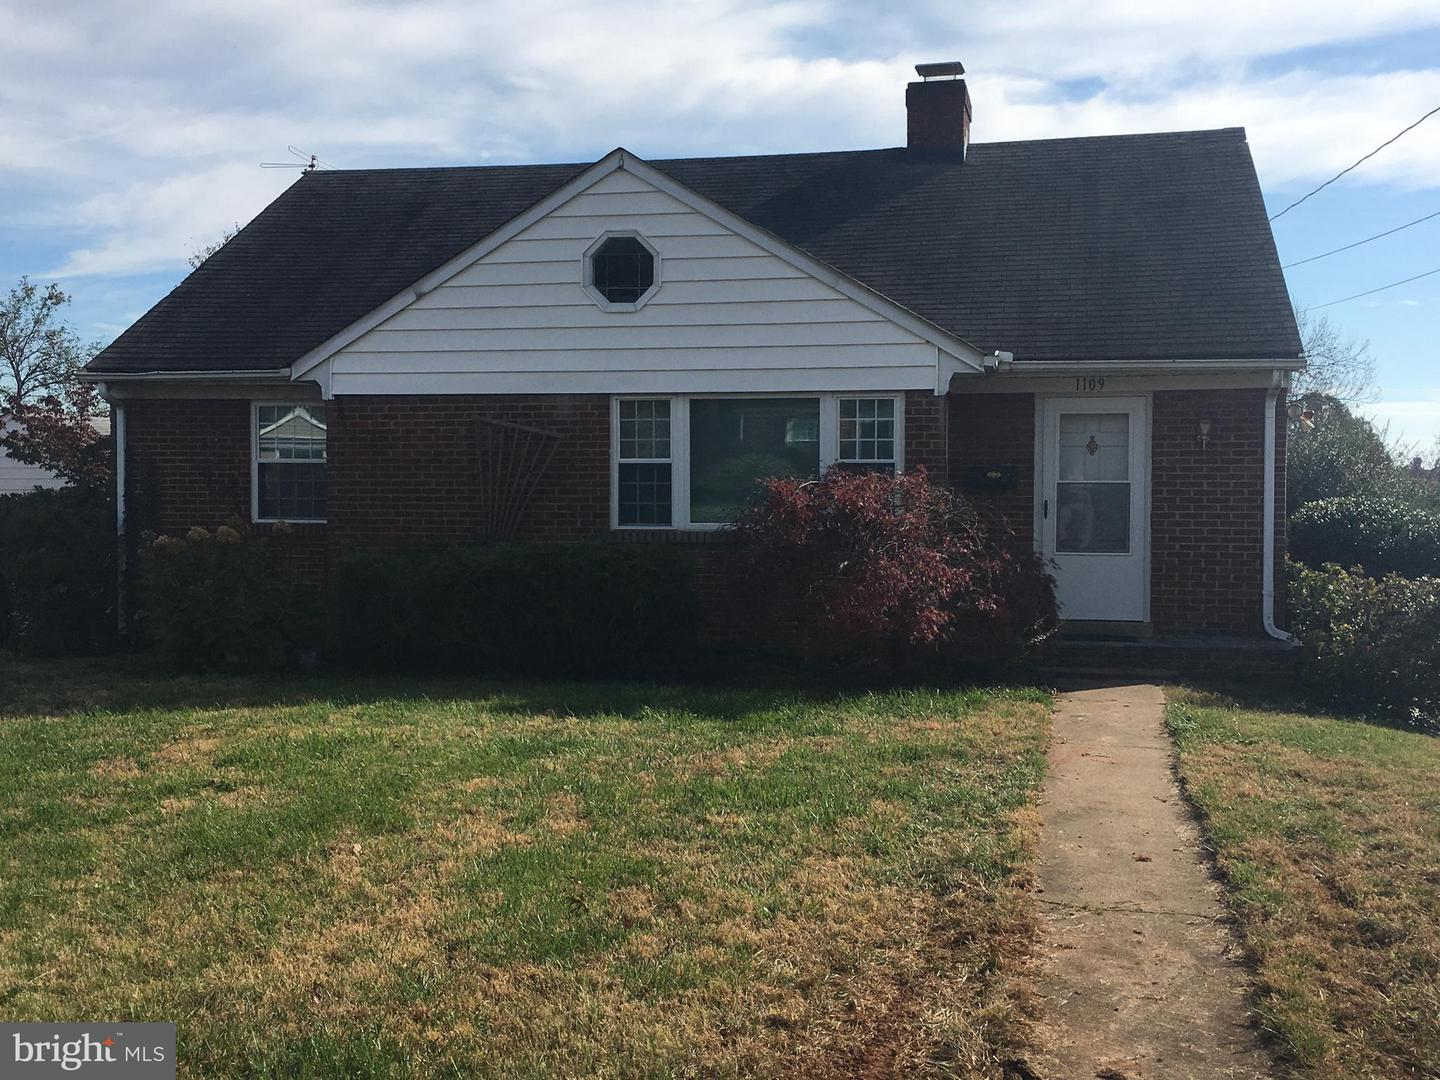 Other Residential for Rent at 1109 Stuart St Culpeper, Virginia 22701 United States